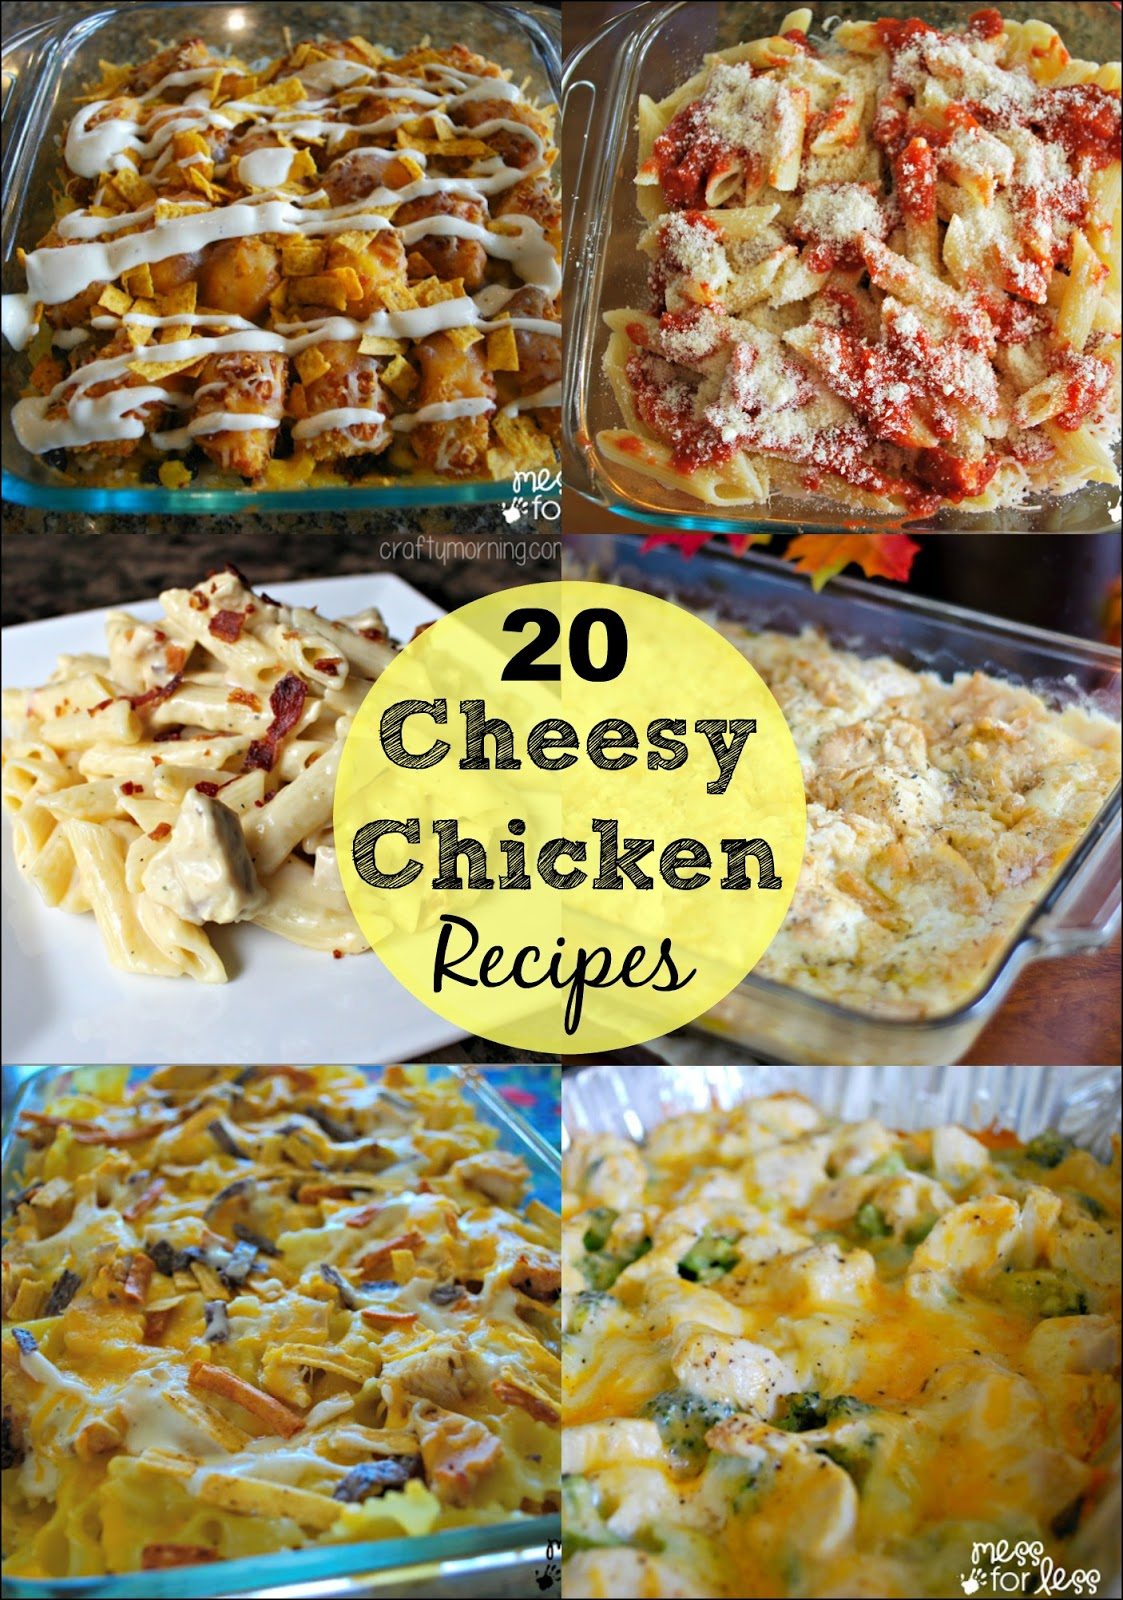 20 Cheesy Chicken Recipes - Family friendly recipes sure to please the entire family!